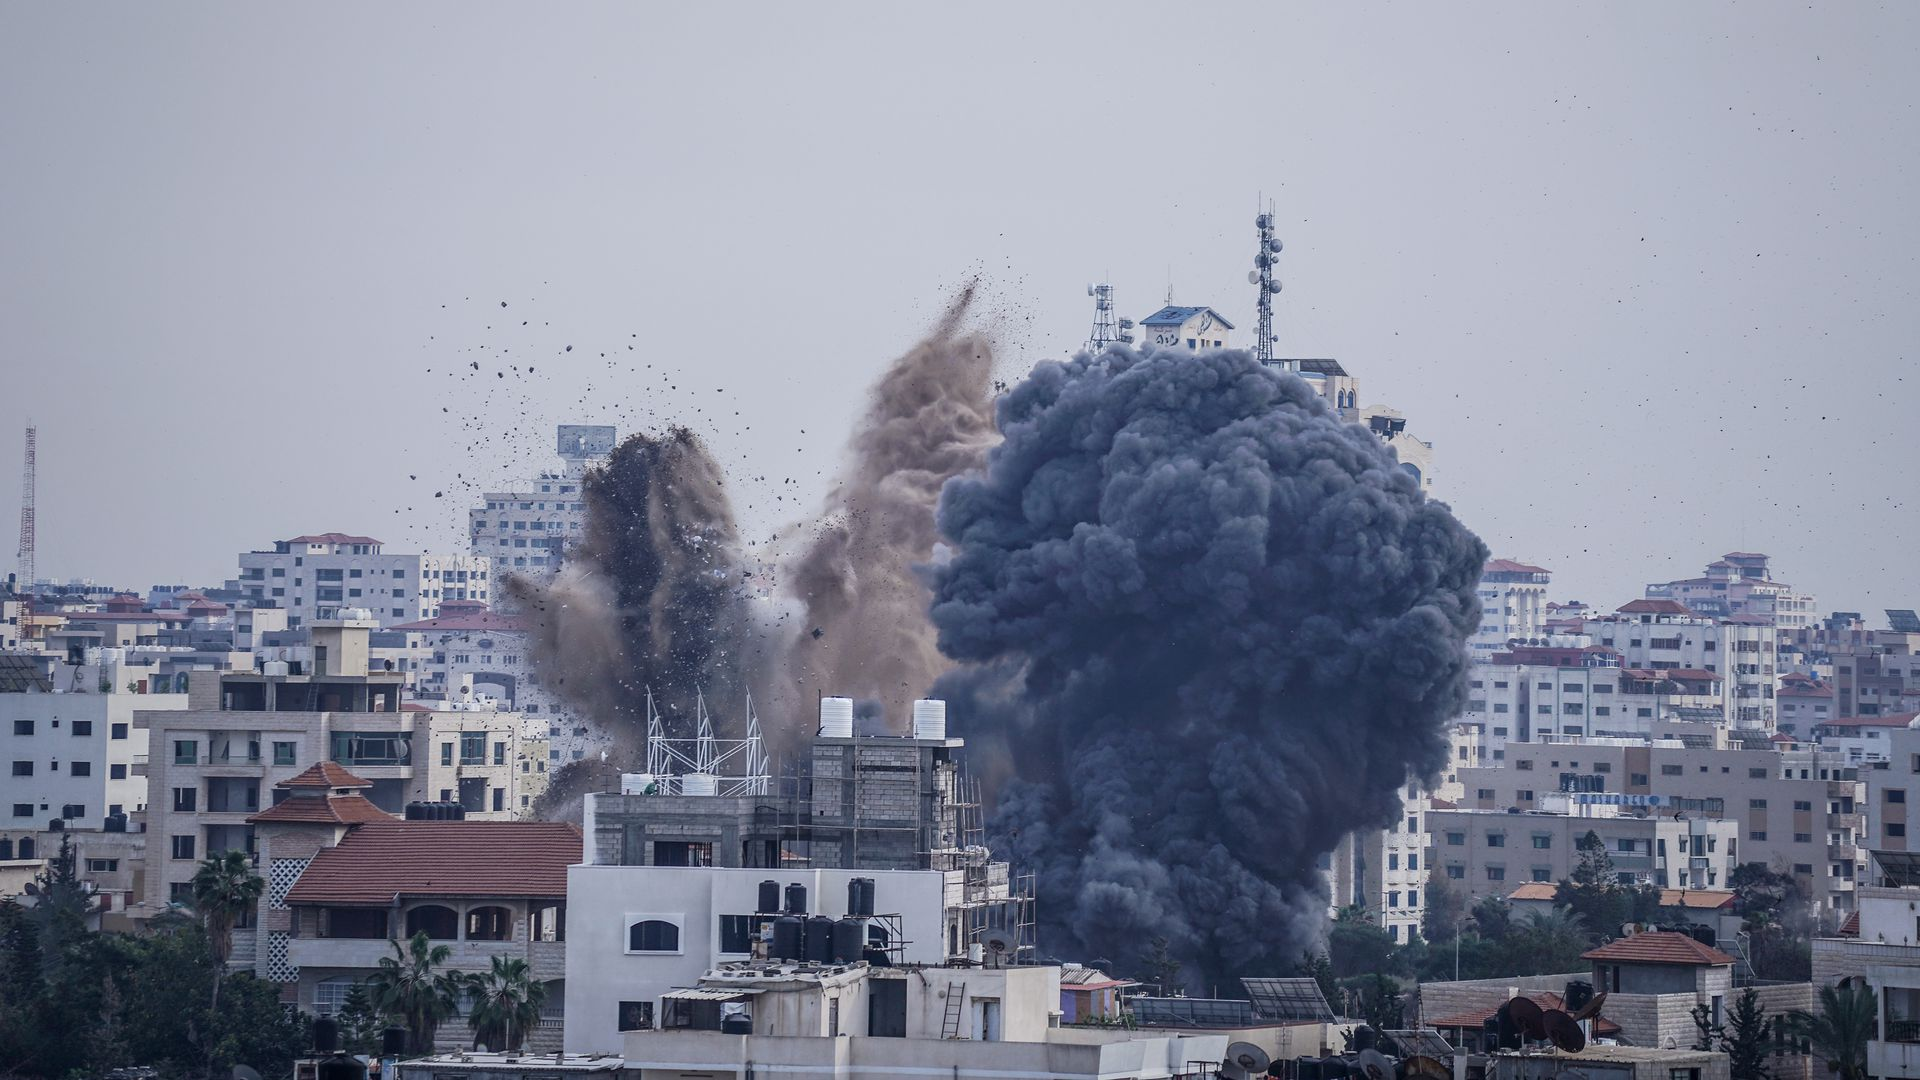 Smoke rises after an Israeli air raid on homes in Gaza City during the conflict between the Palestinians and the Israeli army that began two days ago.